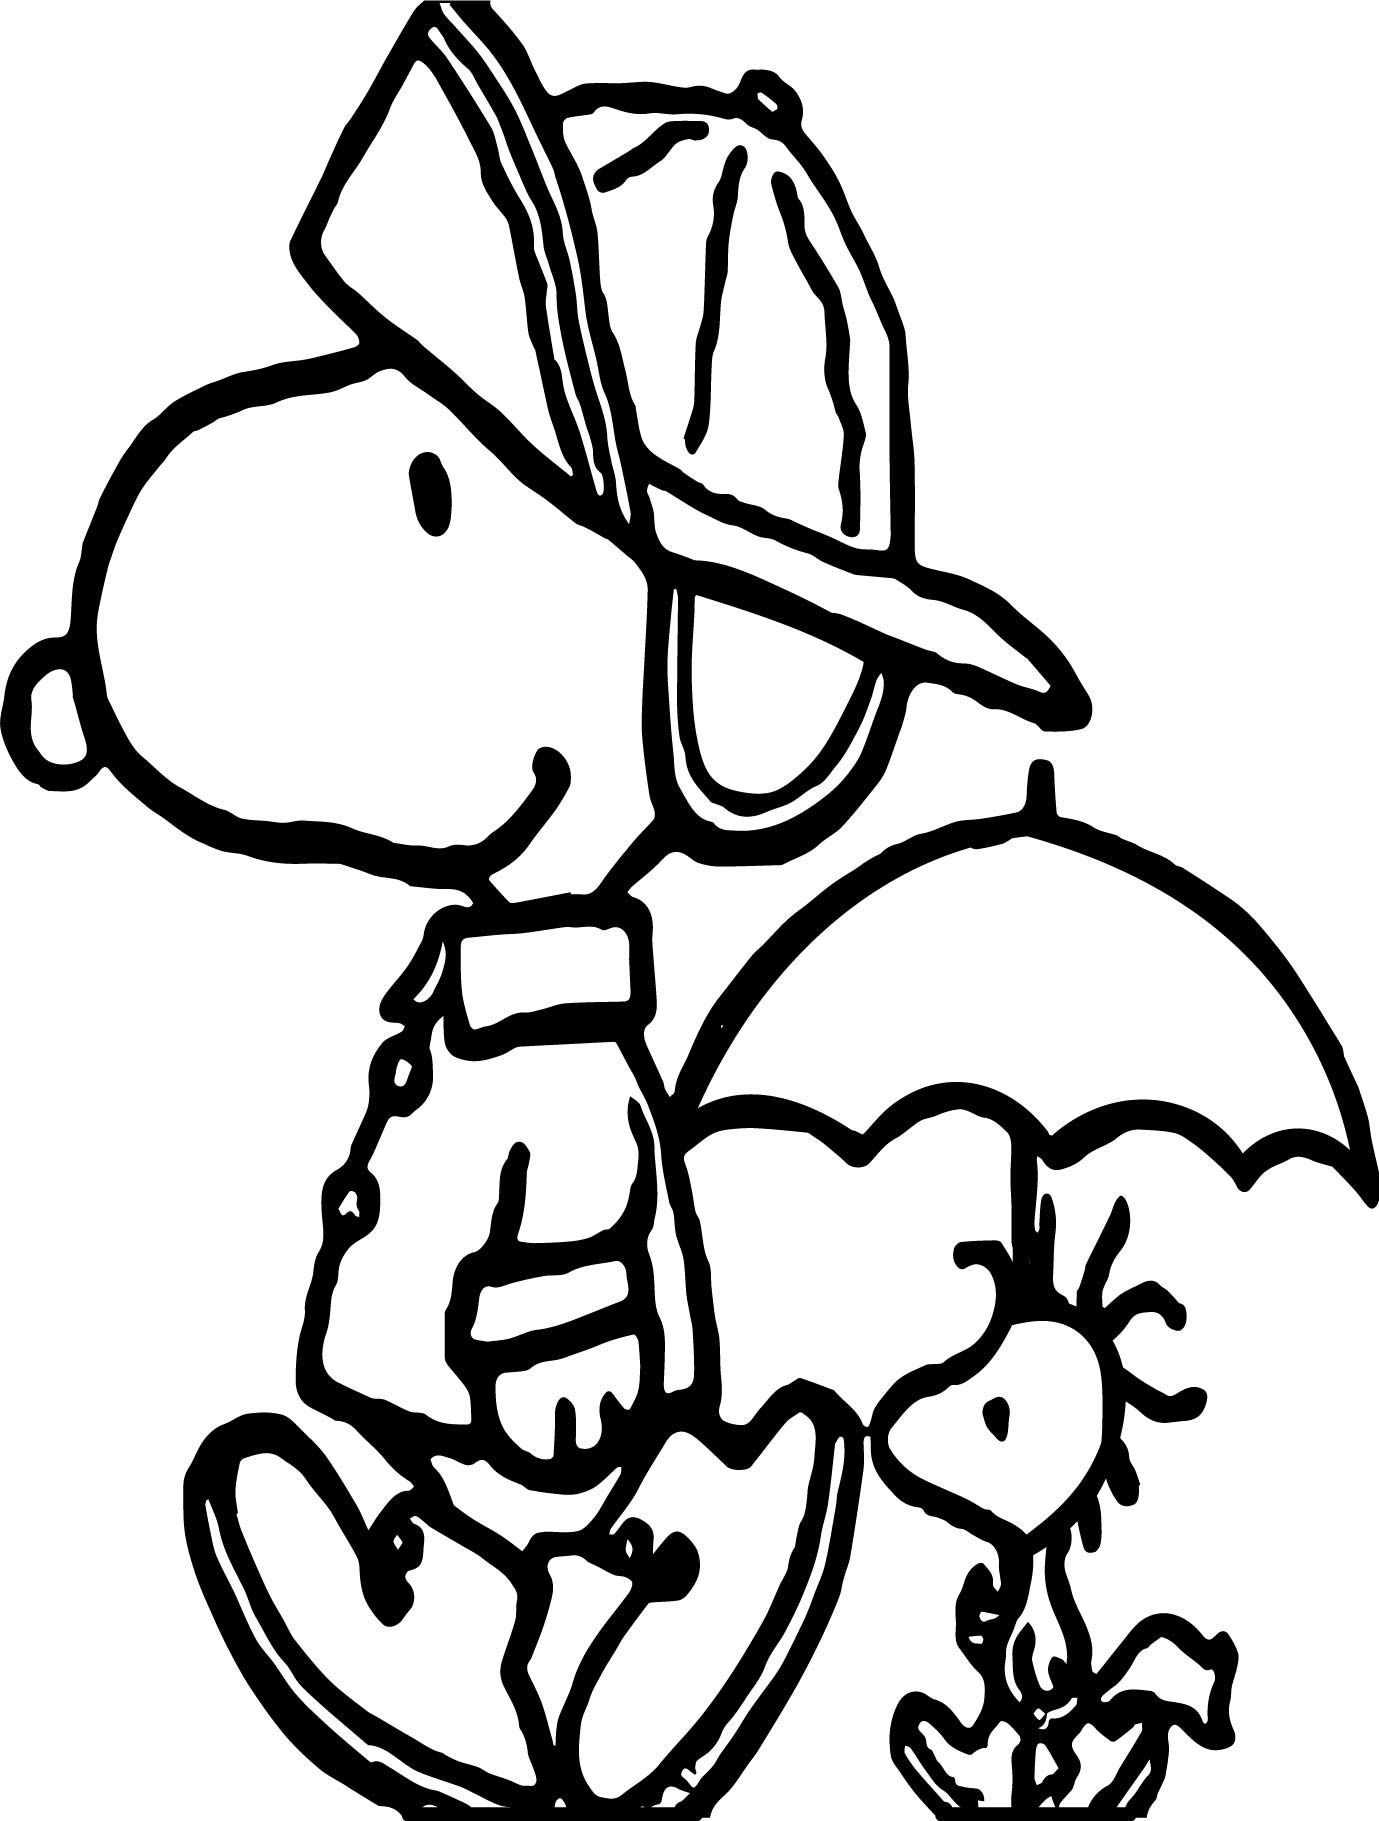 April shower snoopy coloring page for Snoopy coloring page